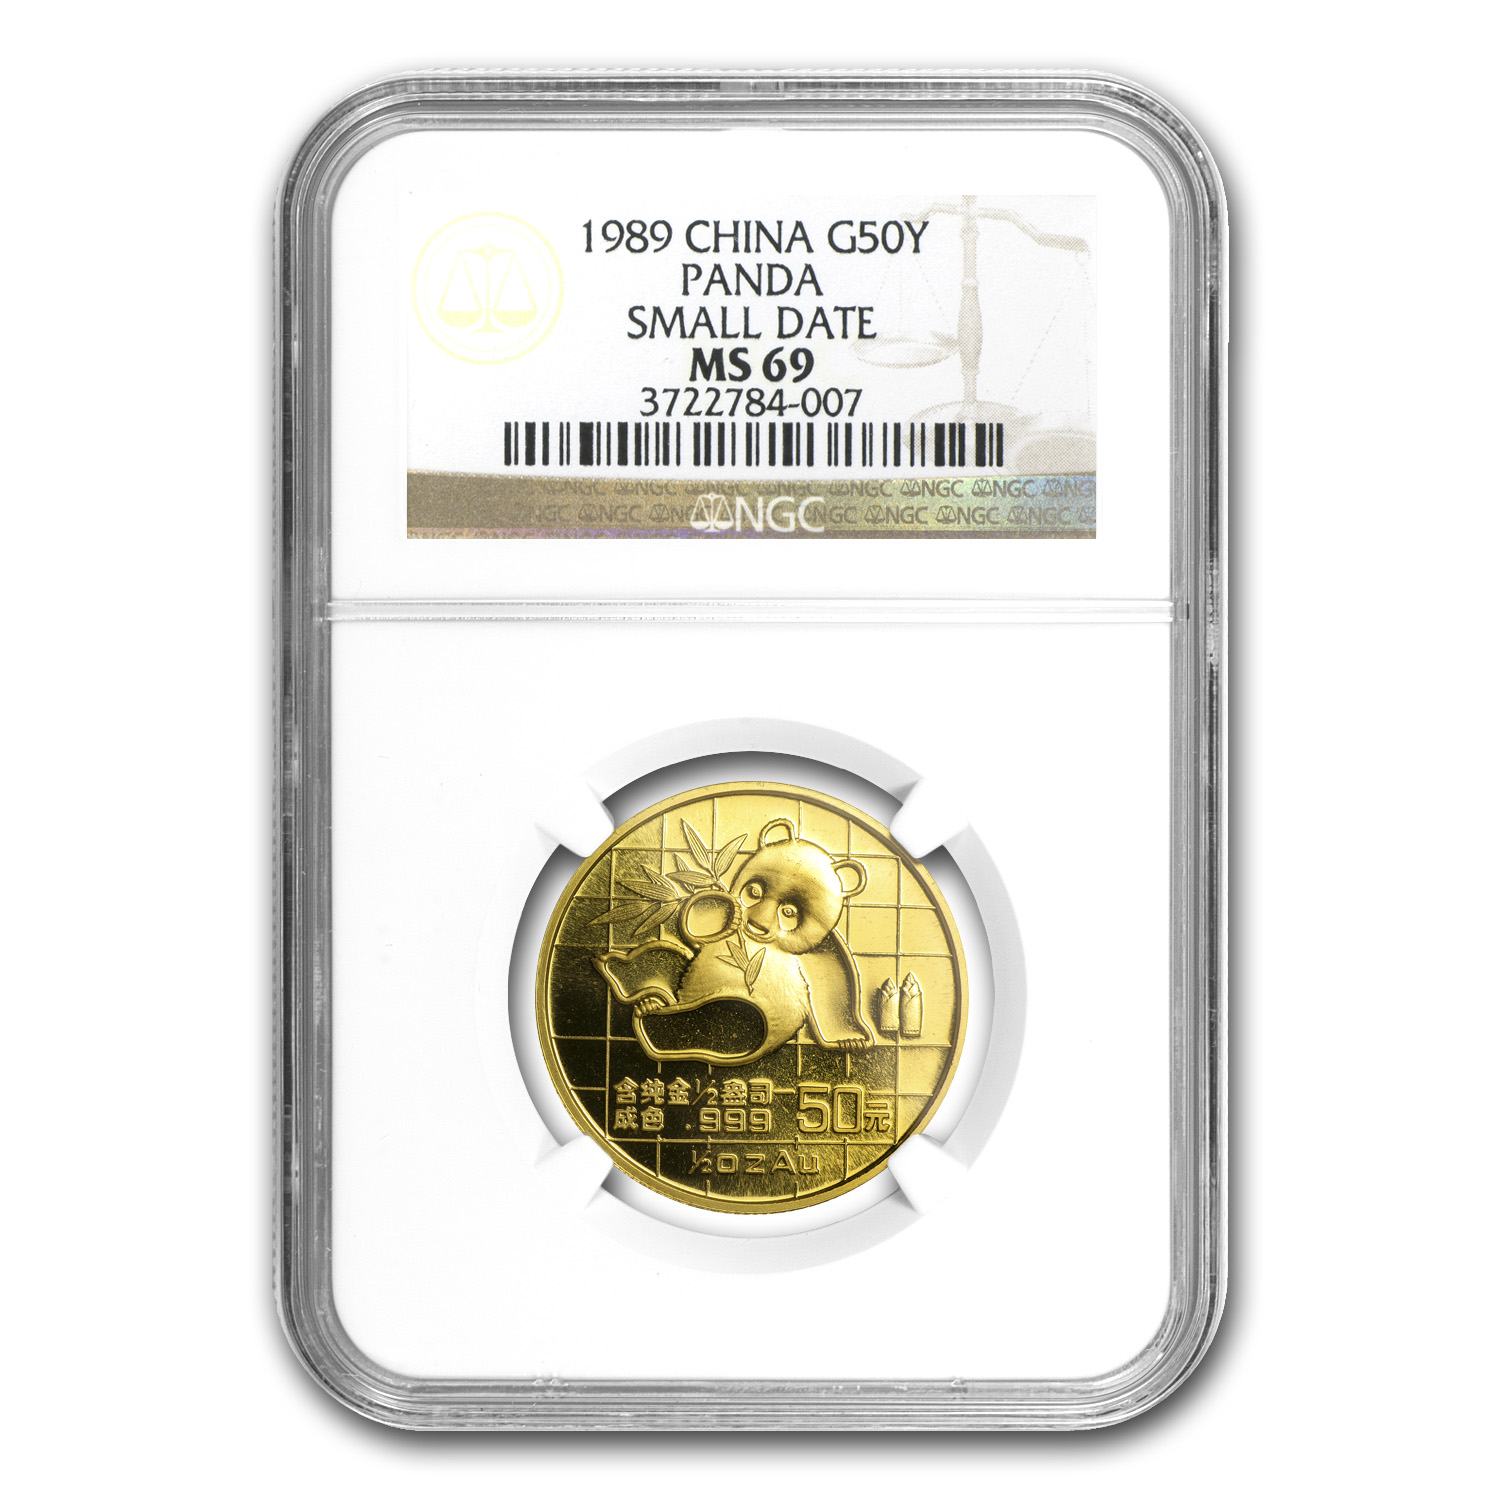 1989 1/2 oz Gold Chinese Panda Small Date MS-69 NGC